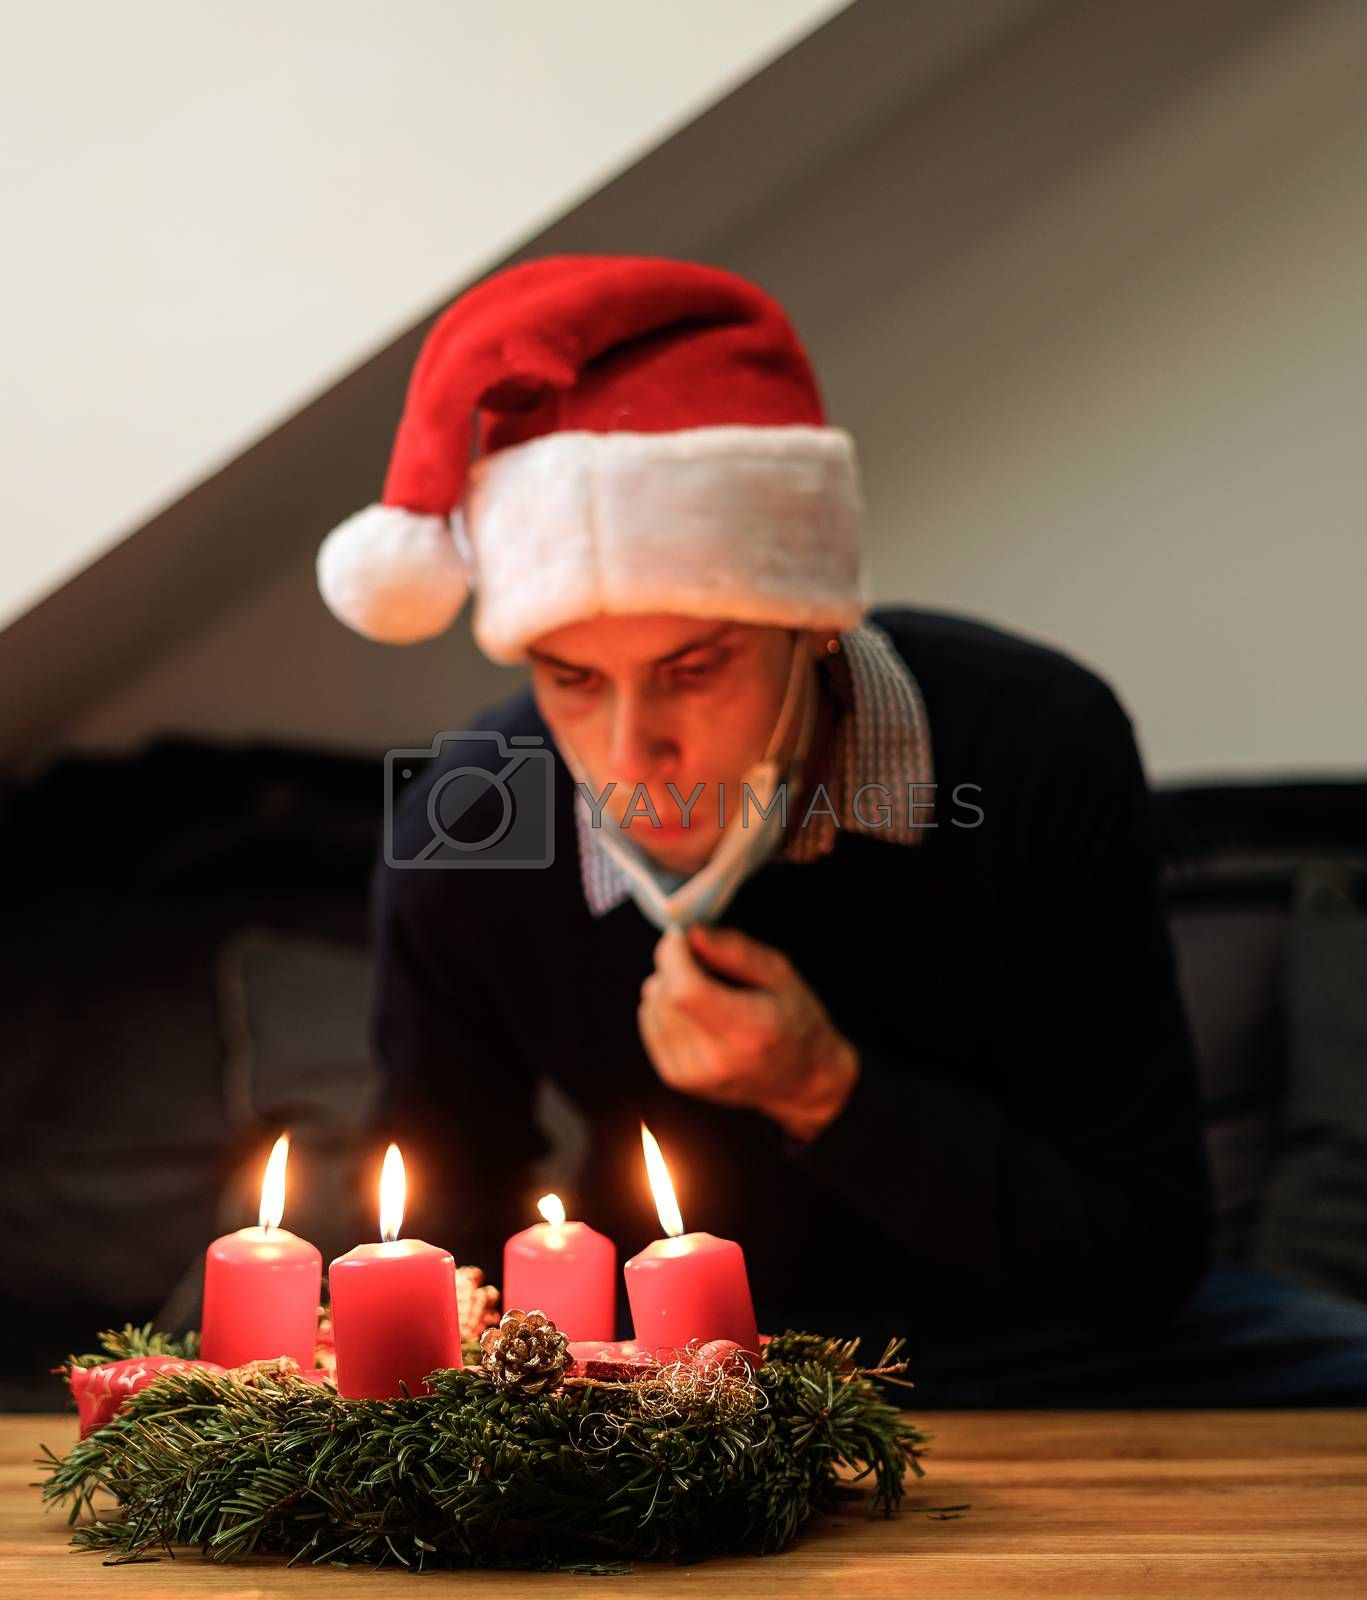 young man blowing out candles from christmas wreath. celebrate christmas alone due to the corona pandemic.